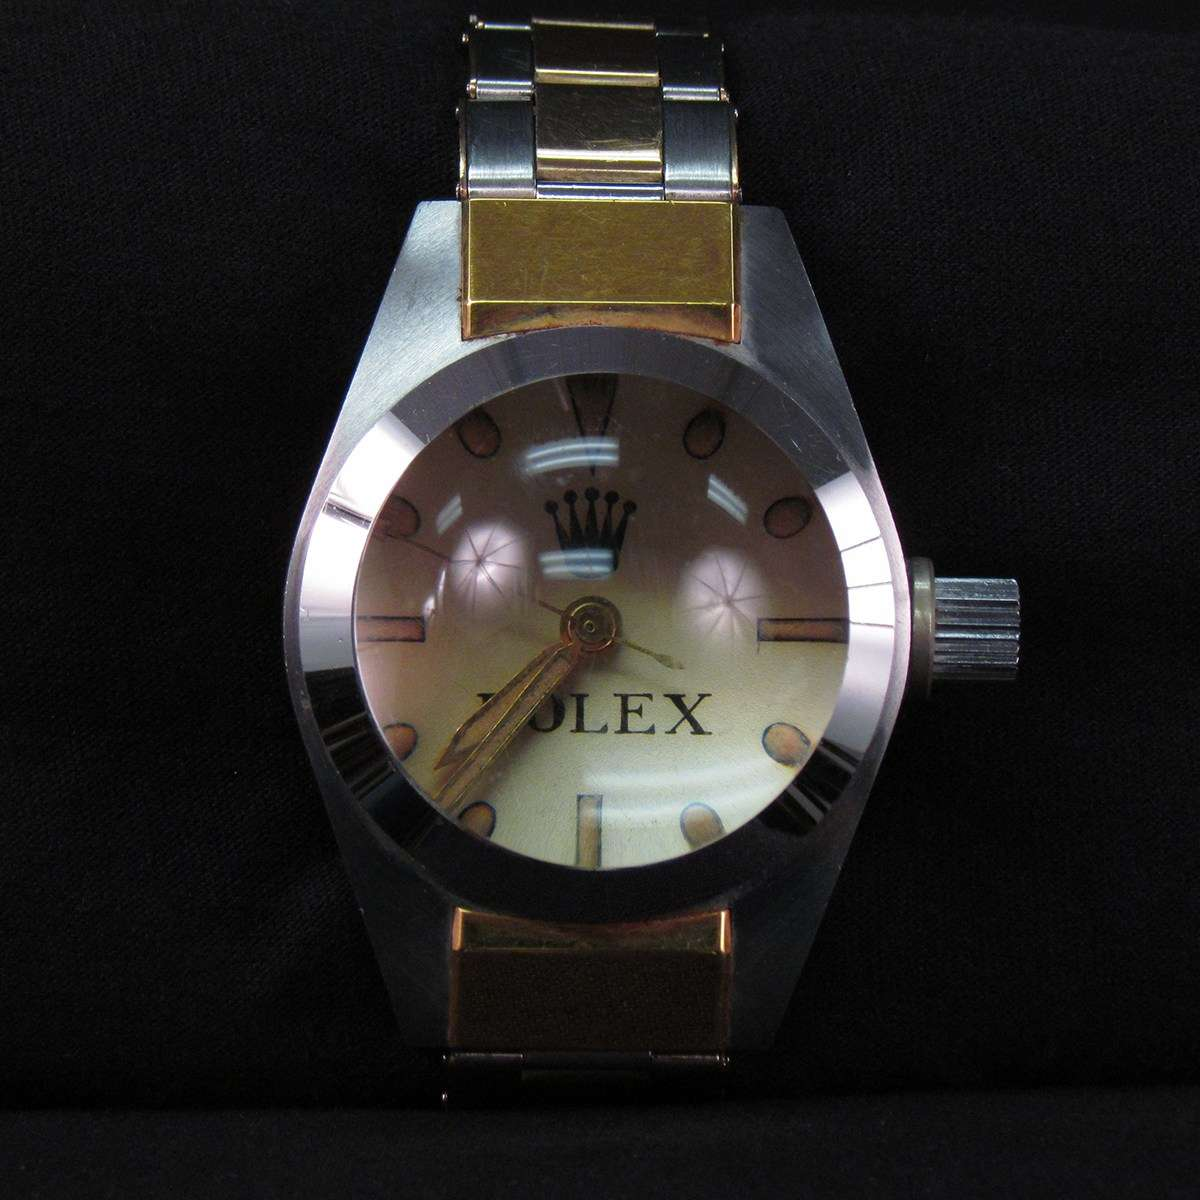 This experimental Rolex watch was attached to the bathyscaphe <em>Trieste </em>when it reached the ocean floor in the Challenger Deep, on 23 January 1960. Image: ANMM. On loan from the Smithsonian Institution.